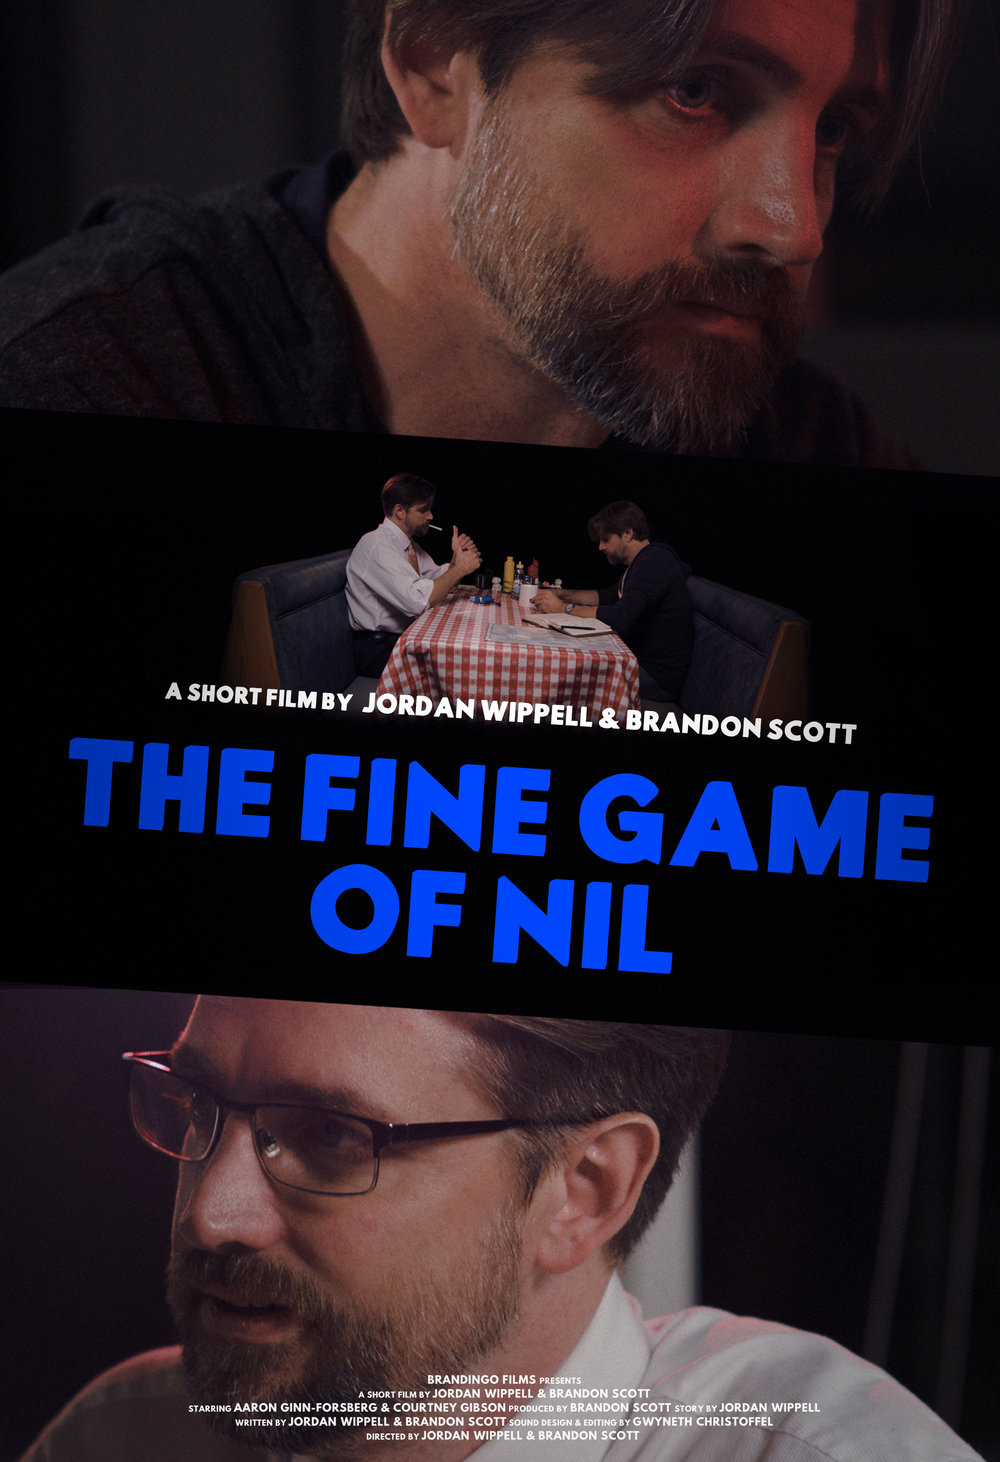 The Fine Game of Nil (2015) - A directorial debut of Brandon Scott and the first co-directed short by Scott & Wippell,